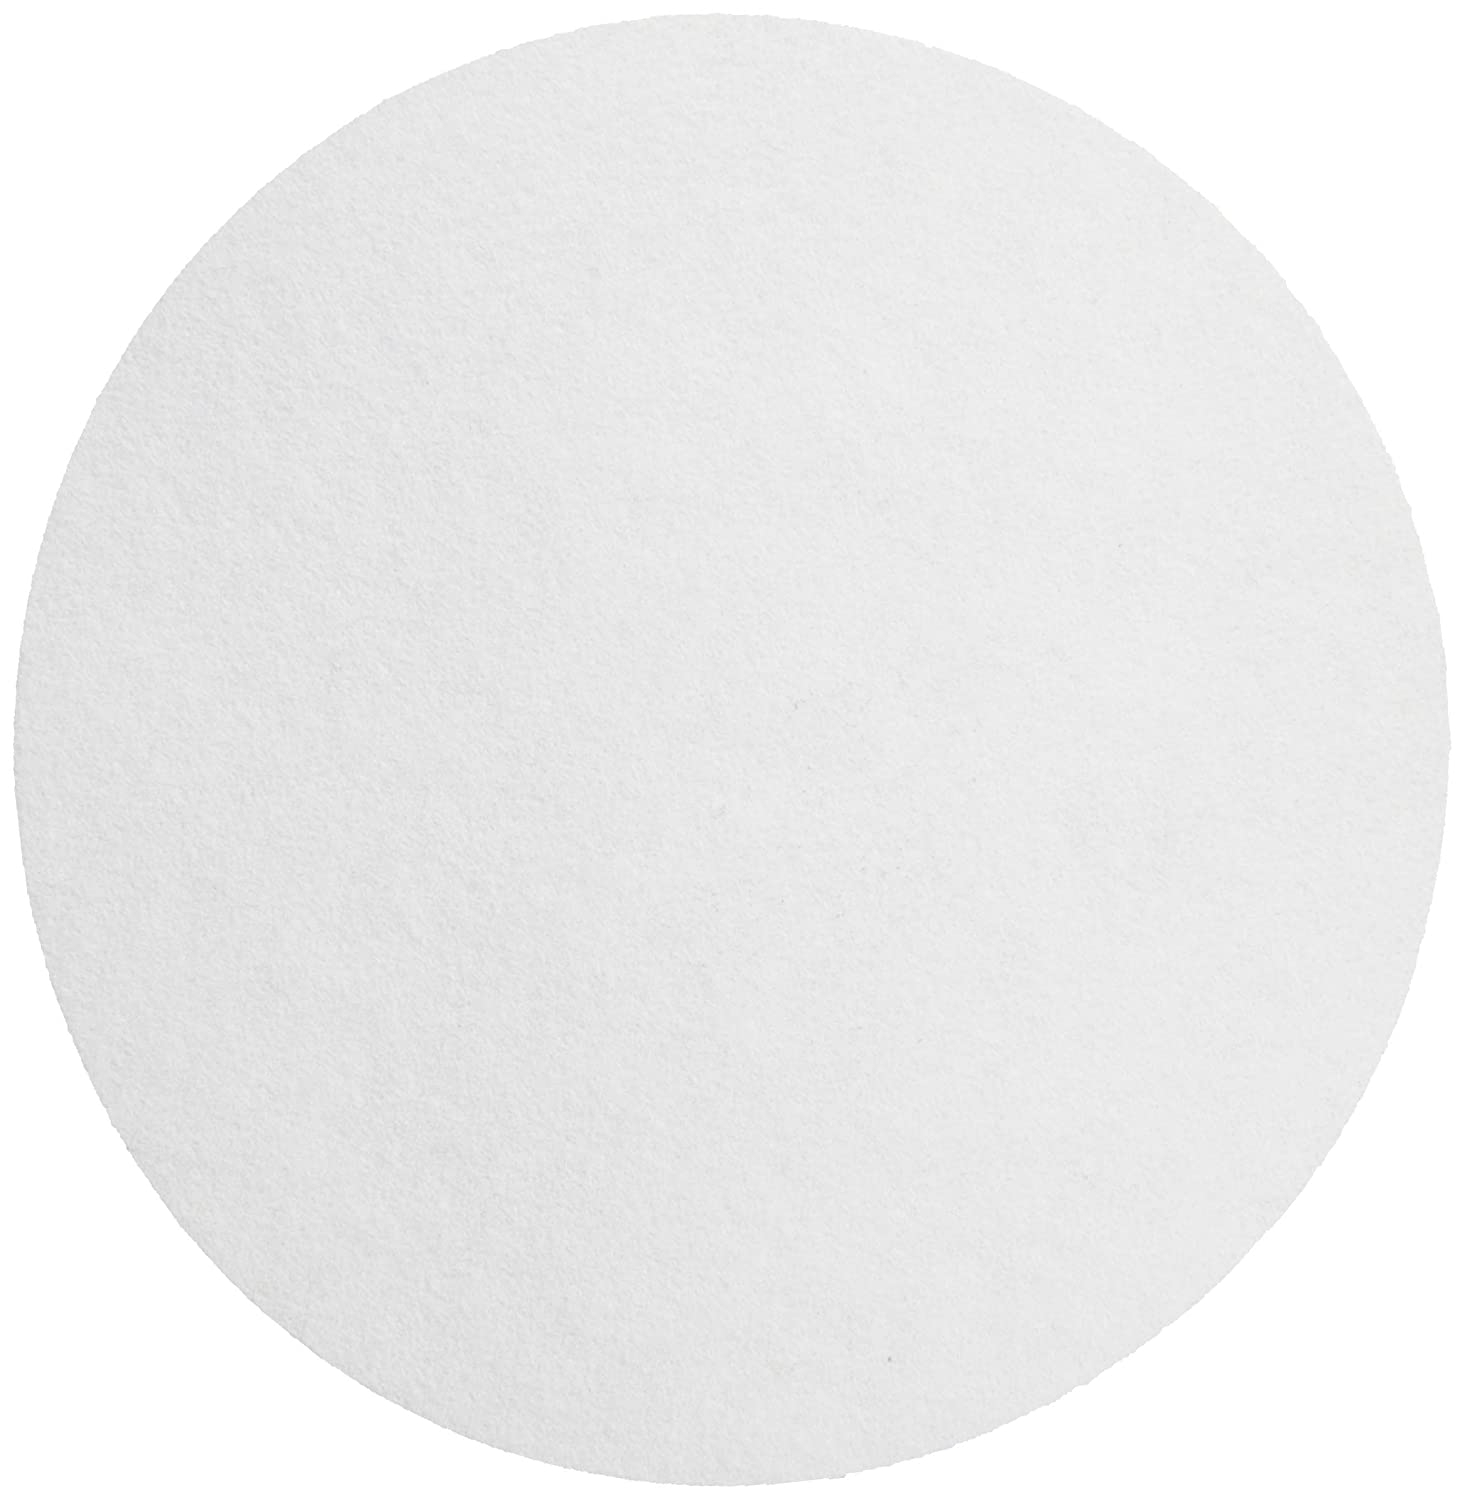 Pack of 100 Ashless Camlab 1171167 Grade 15 Quantitative Filter Paper 42 42.5 mm Diameter Very Slow Filtering